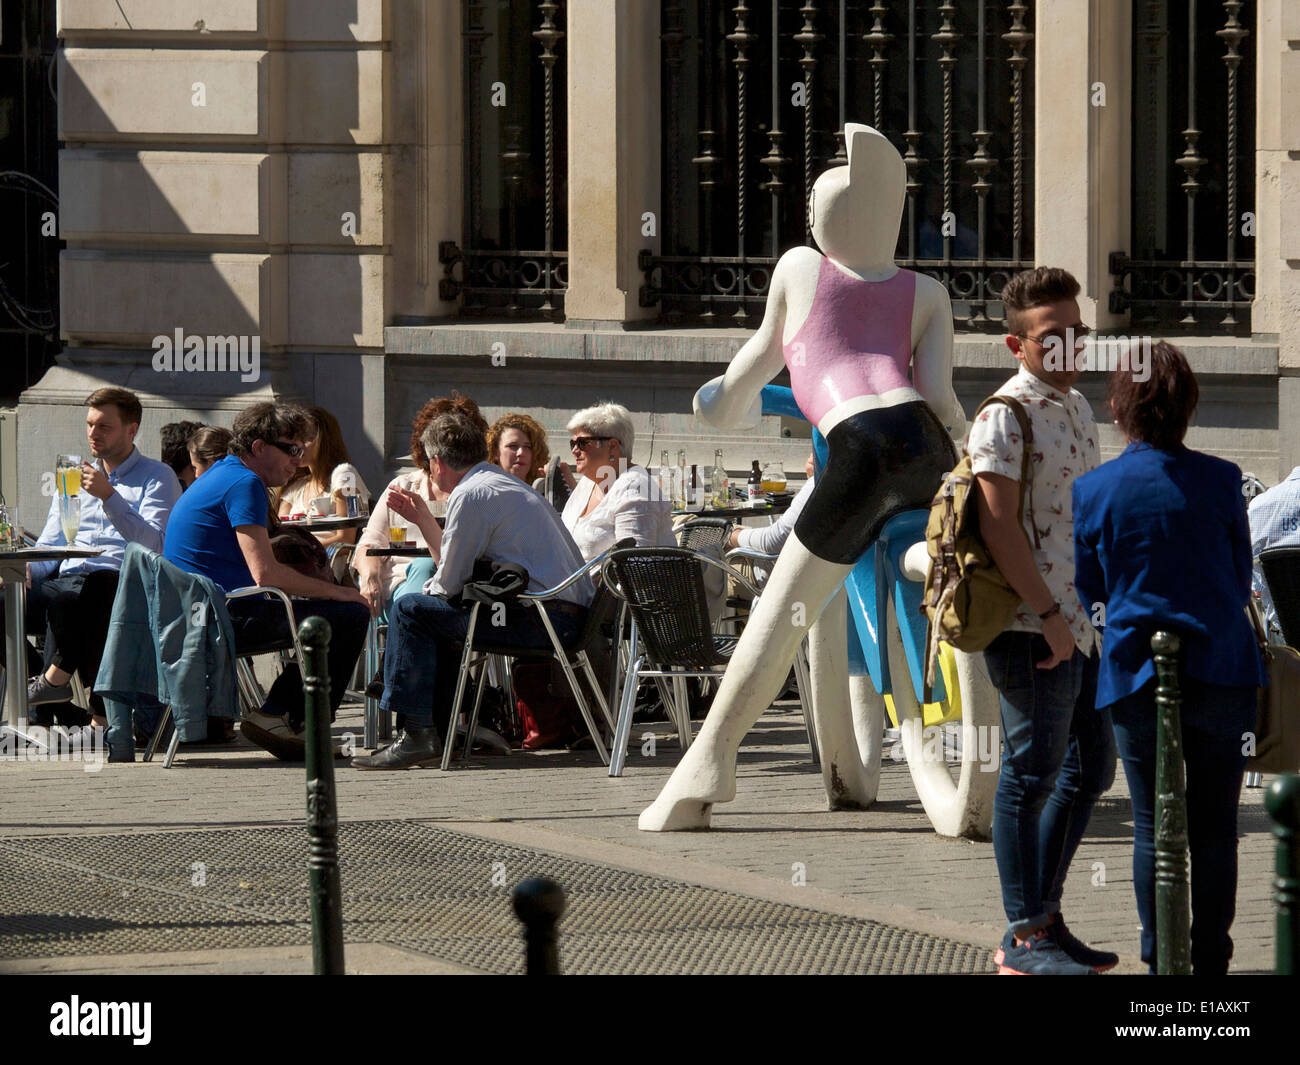 People sitting outside and drinking a beer in the sun, Brussels city center, Belgium Stock Photo